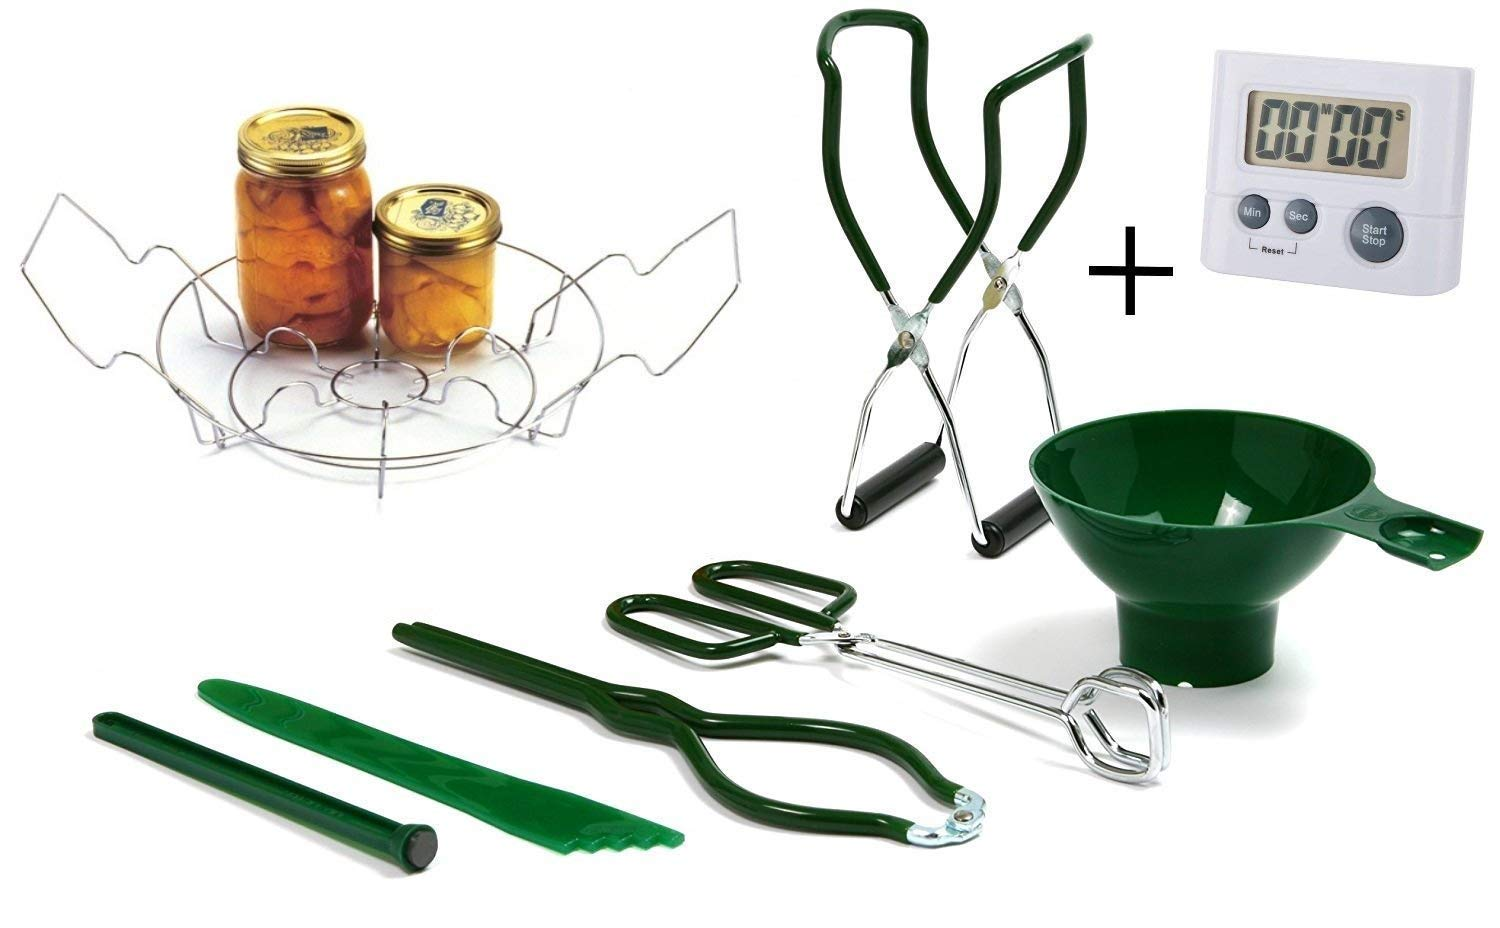 Fox Run  5250 Home Canning Tool Set 5-Piece Red